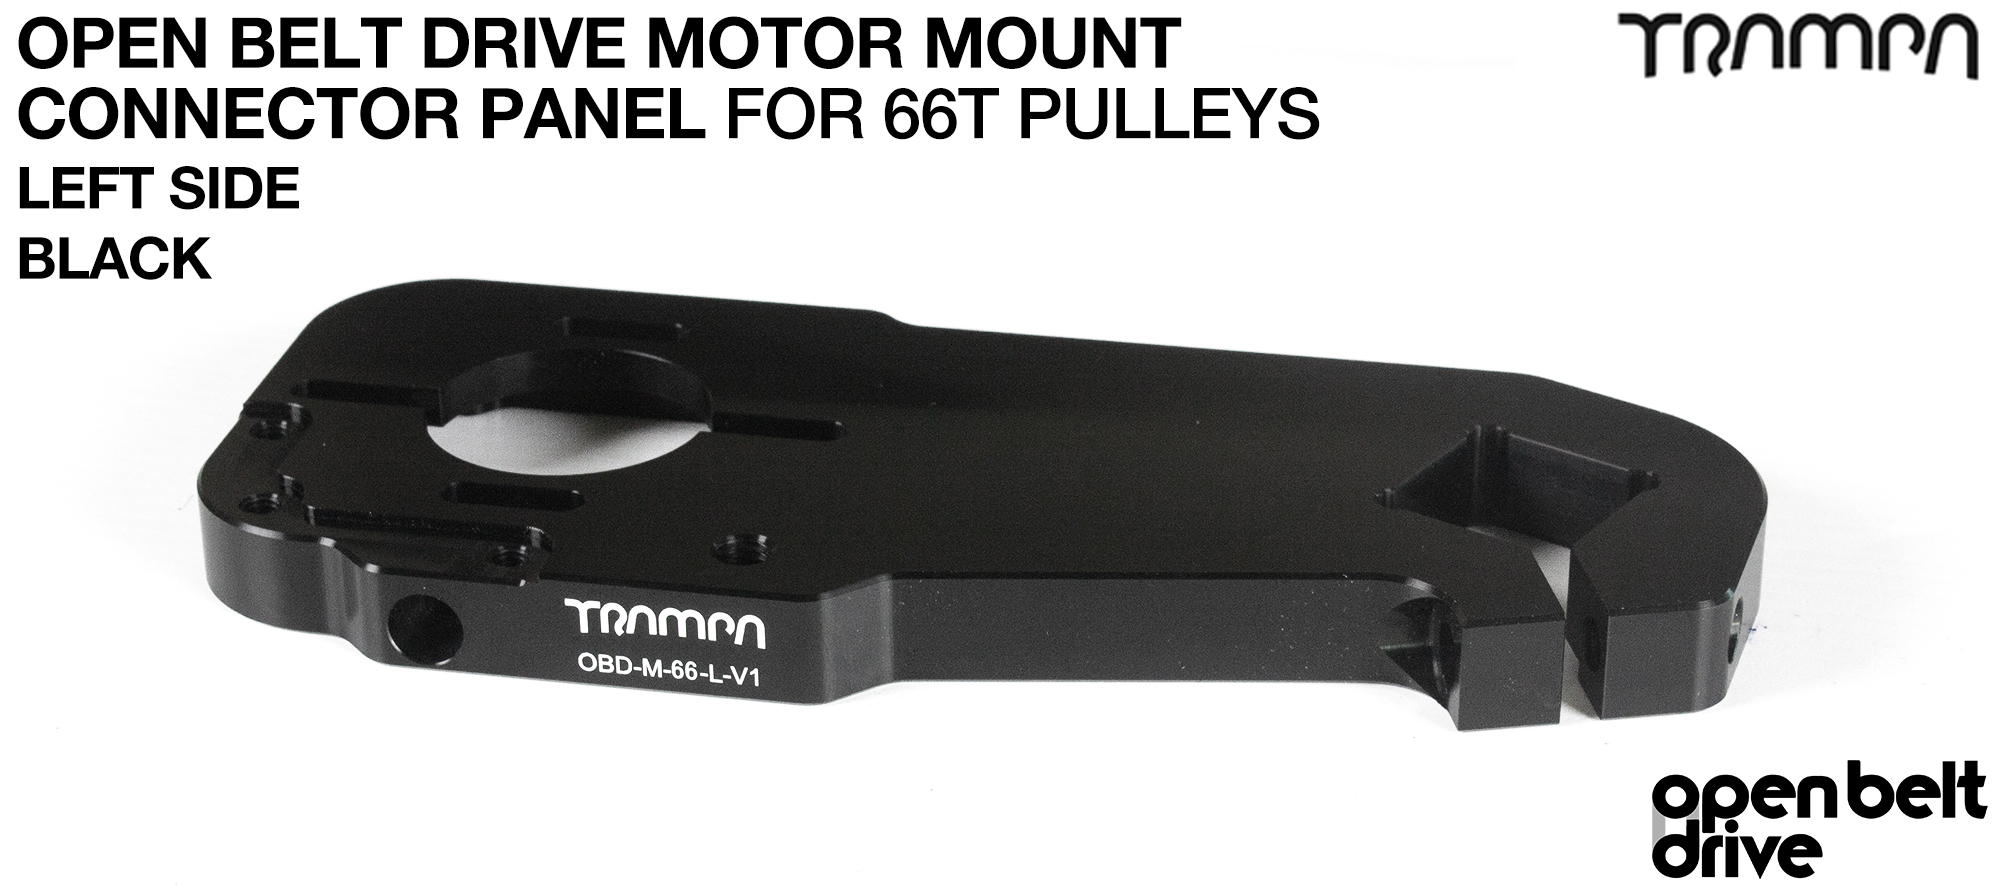 BLACK 66T TWIN OBD Motor Mount Panels